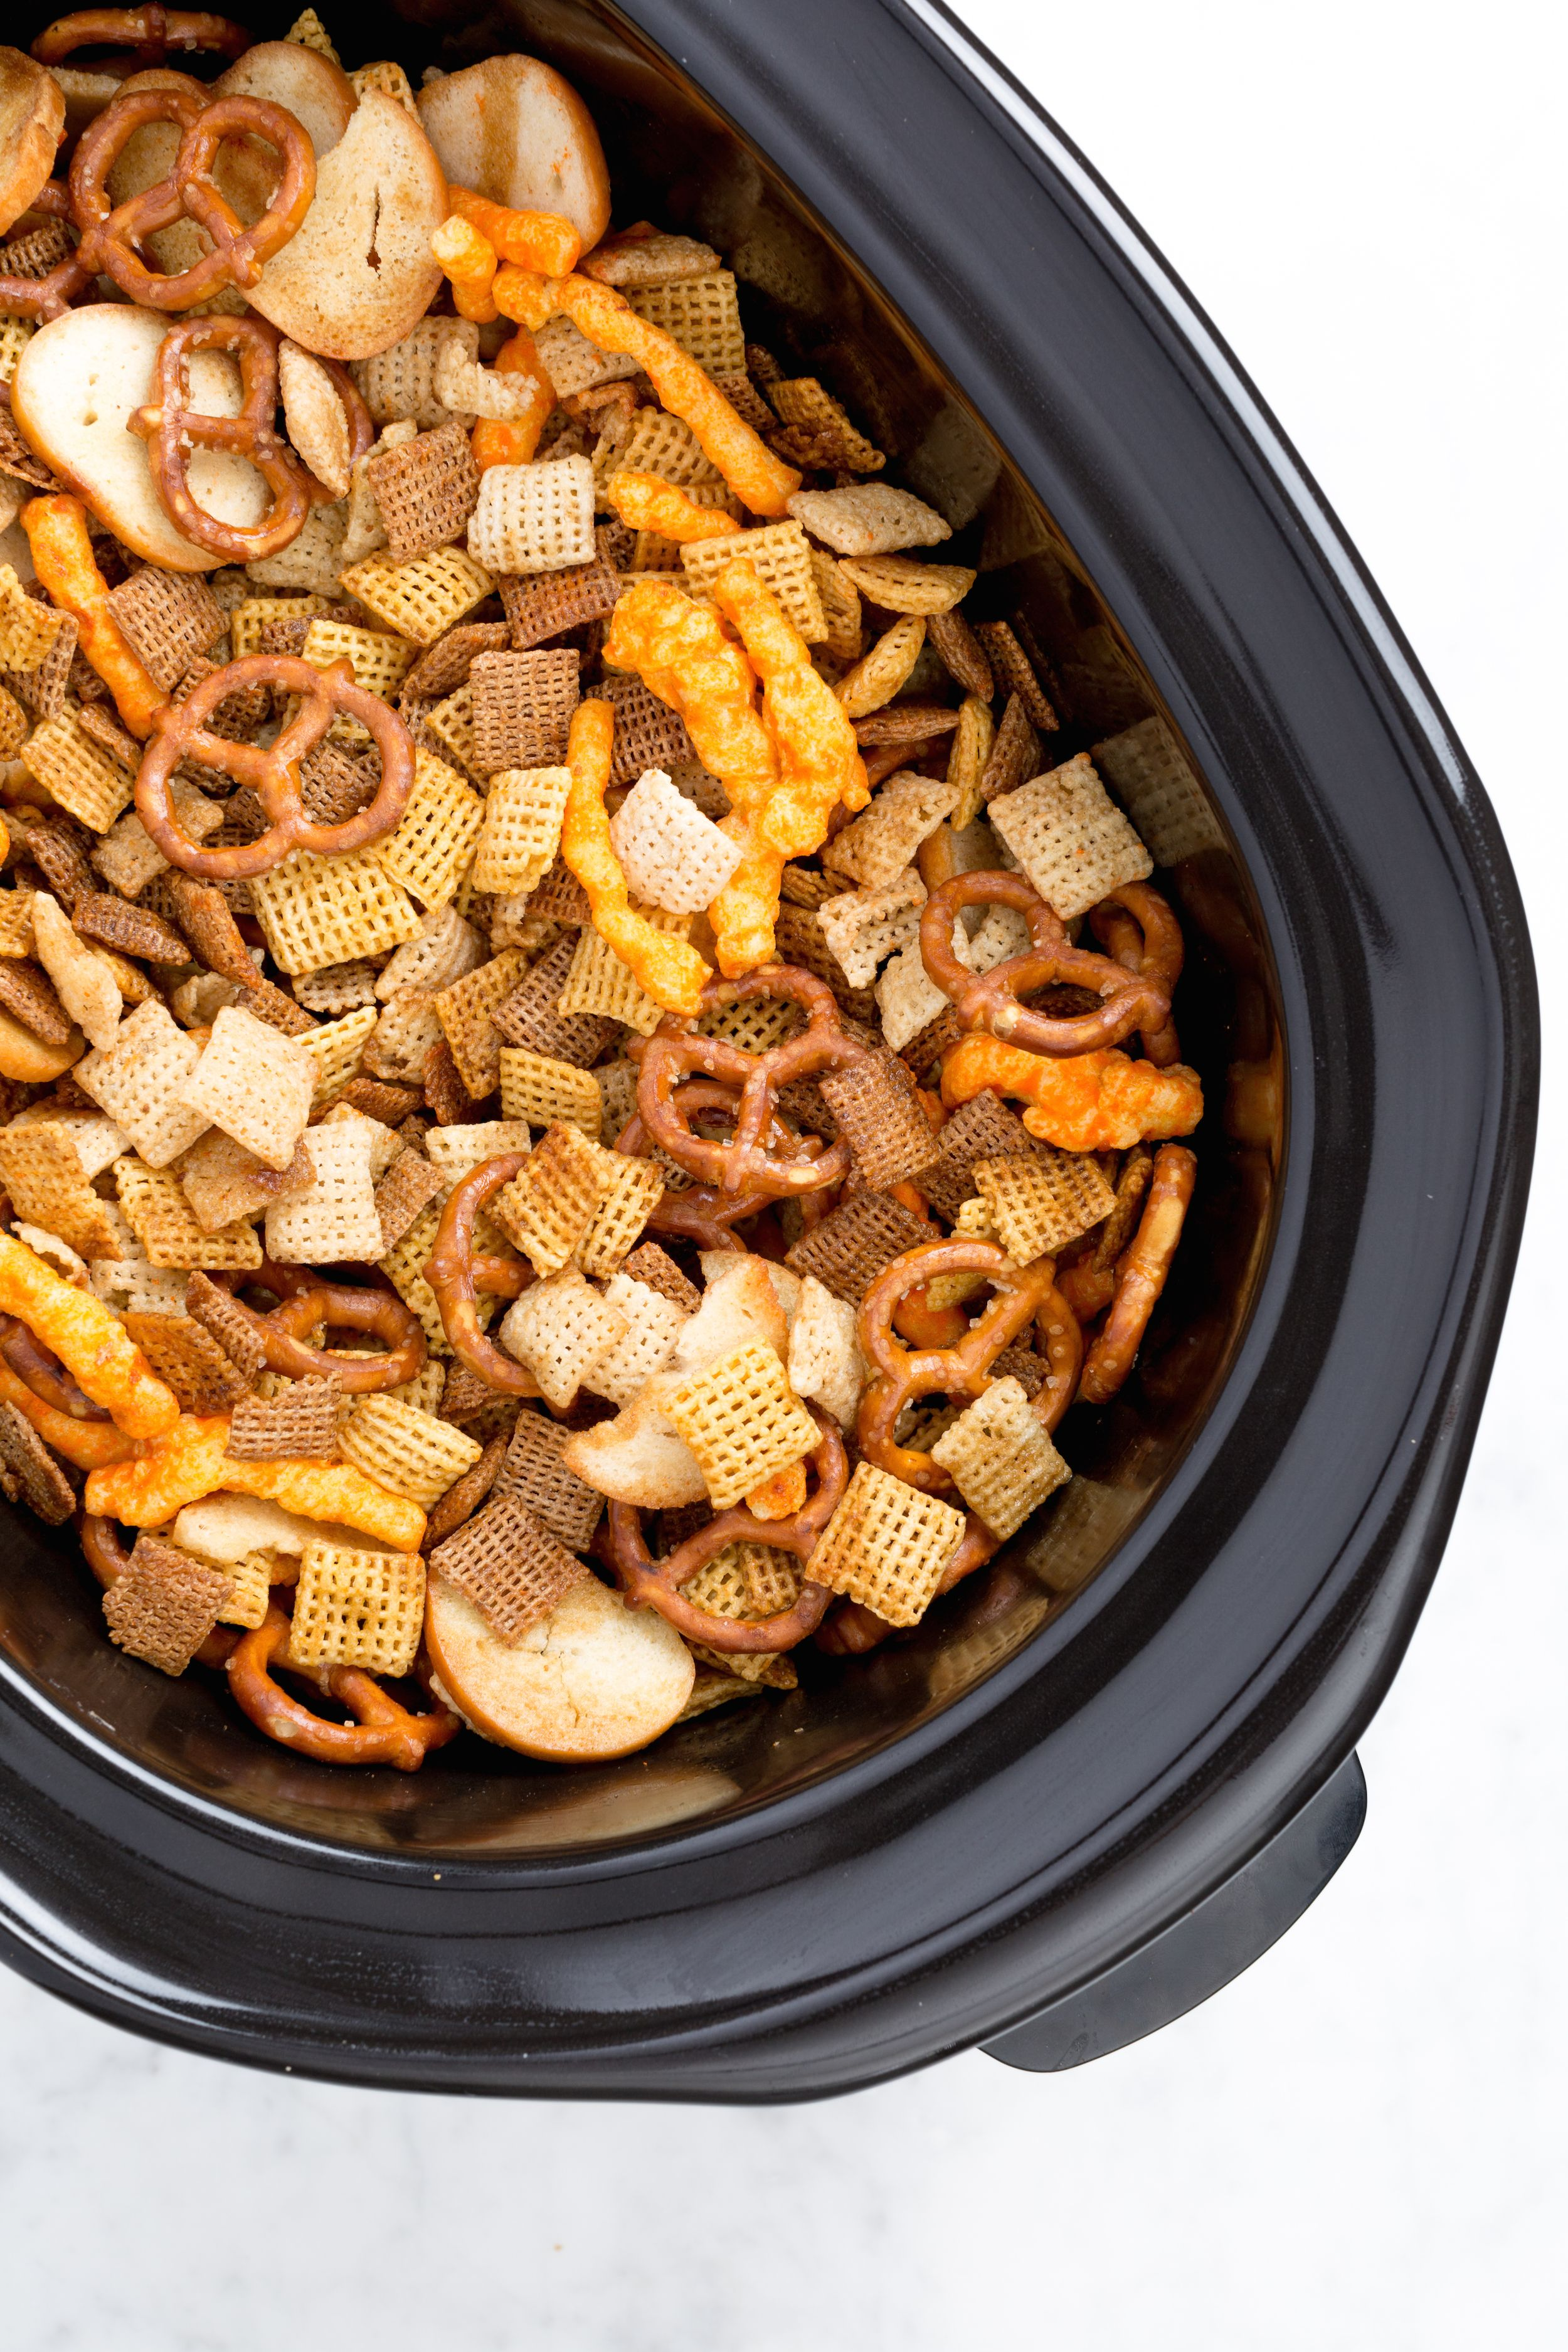 """<p>If you're still just using your slow cooker for dinner, you're totally missing out. Instead of phoning it in with store-bought Chex Mix, prep a big batch of the homemade kindin your slowcooker to keep your party guests satisfied all night long.</p><p>Get the recipe from <a href=""""http://www.delish.com/cooking/recipe-ideas/recipes/a44362/slow-cooker-chex-mix-recipe/"""" target=""""_blank"""">Delish</a>.</p>"""